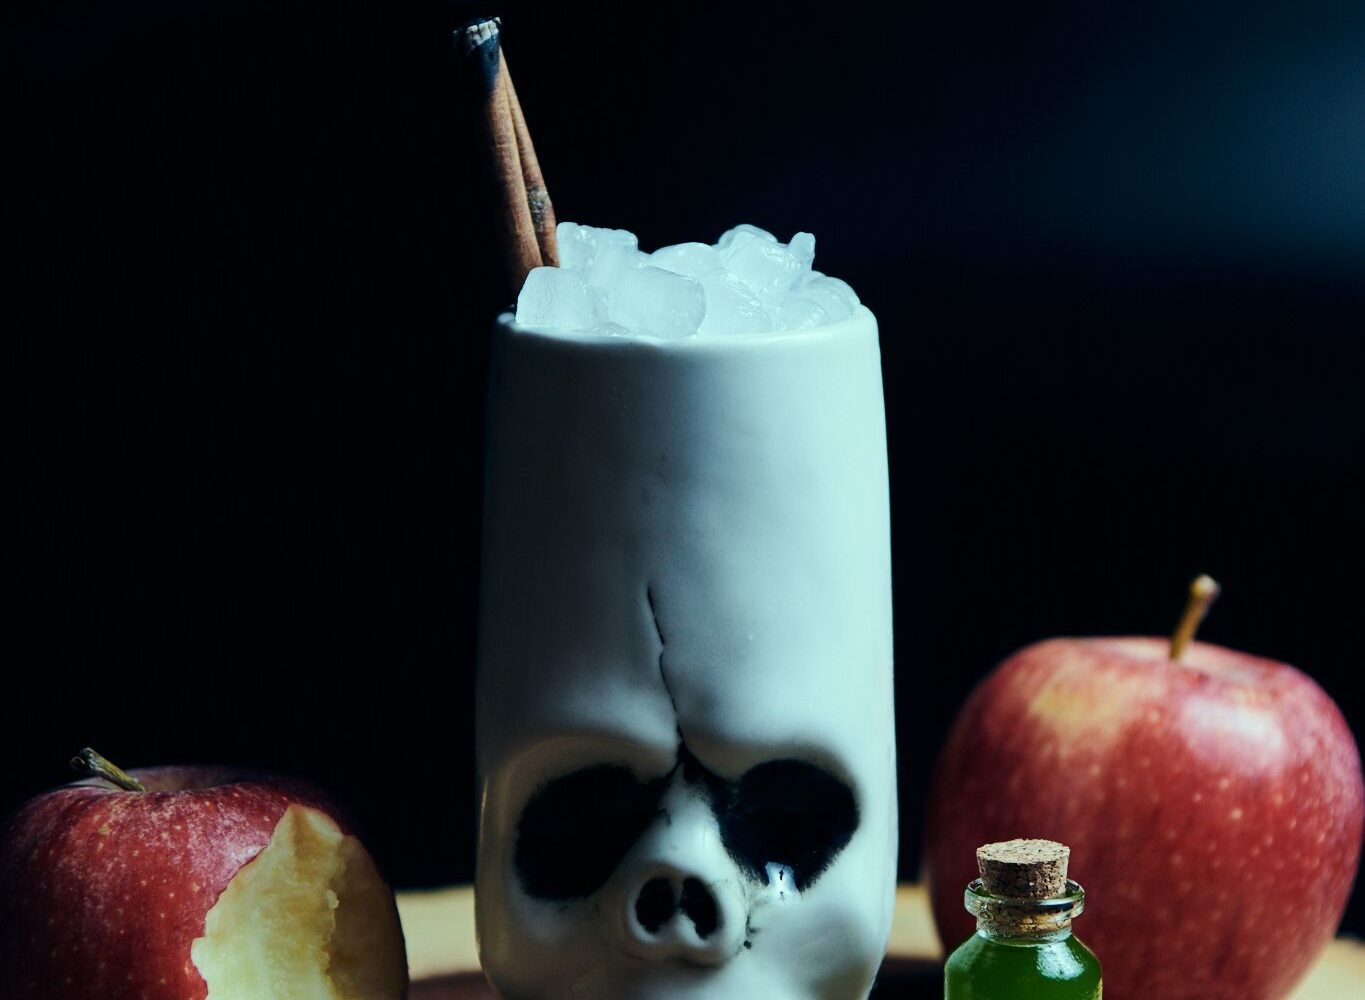 The tale of Snow White gets a whiskey and apple cider drink called the Fairest Apple of Them All. Photograph courtesy of Drink Company.